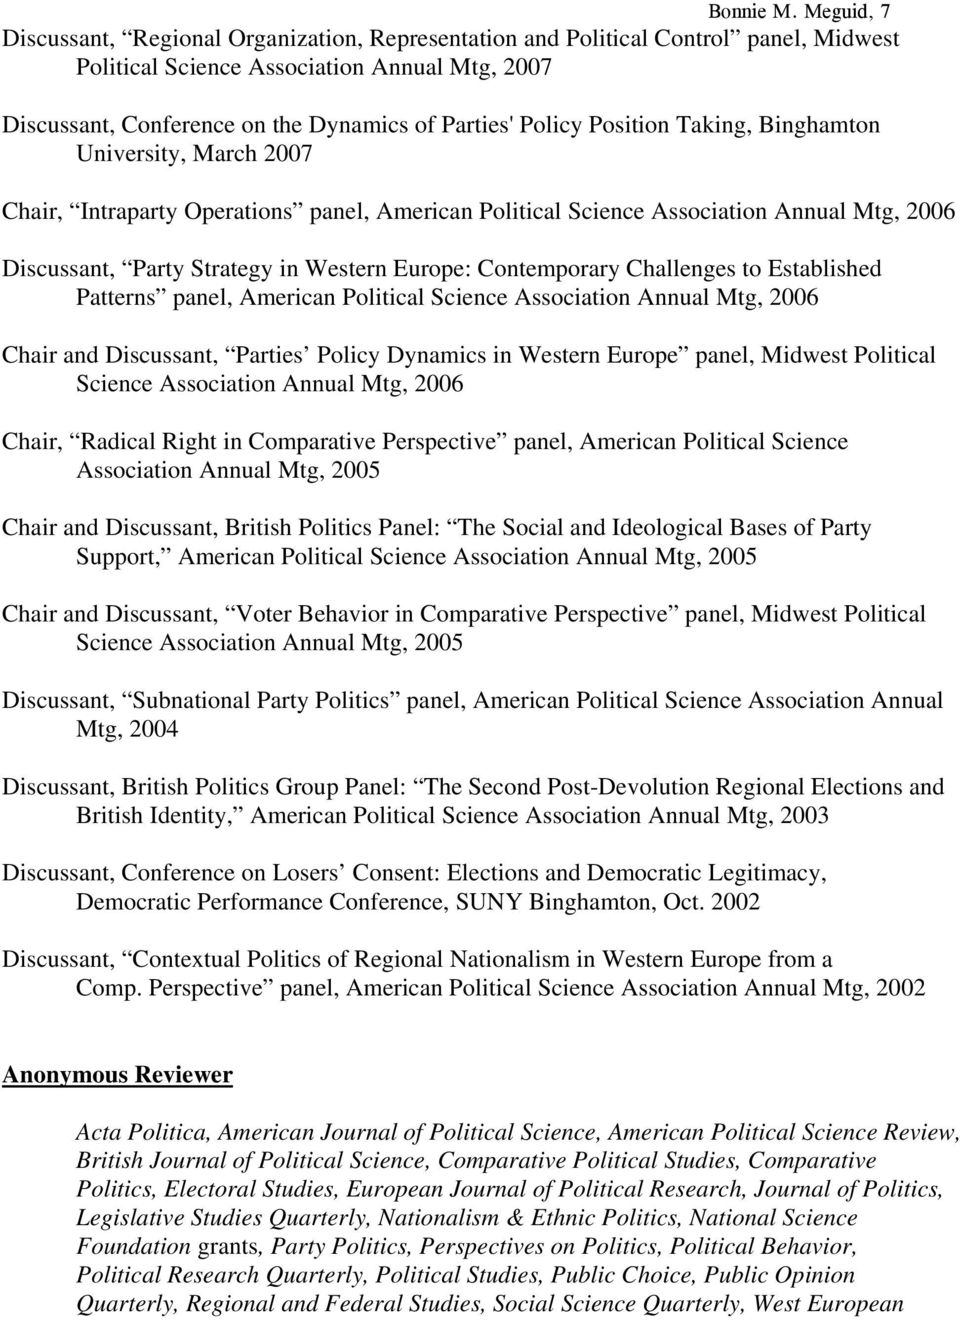 Policy Position Taking, Binghamton University, March 2007 Chair, Intraparty Operations panel, American Political Science Association Annual Mtg, 2006 Discussant, Party Strategy in Western Europe: